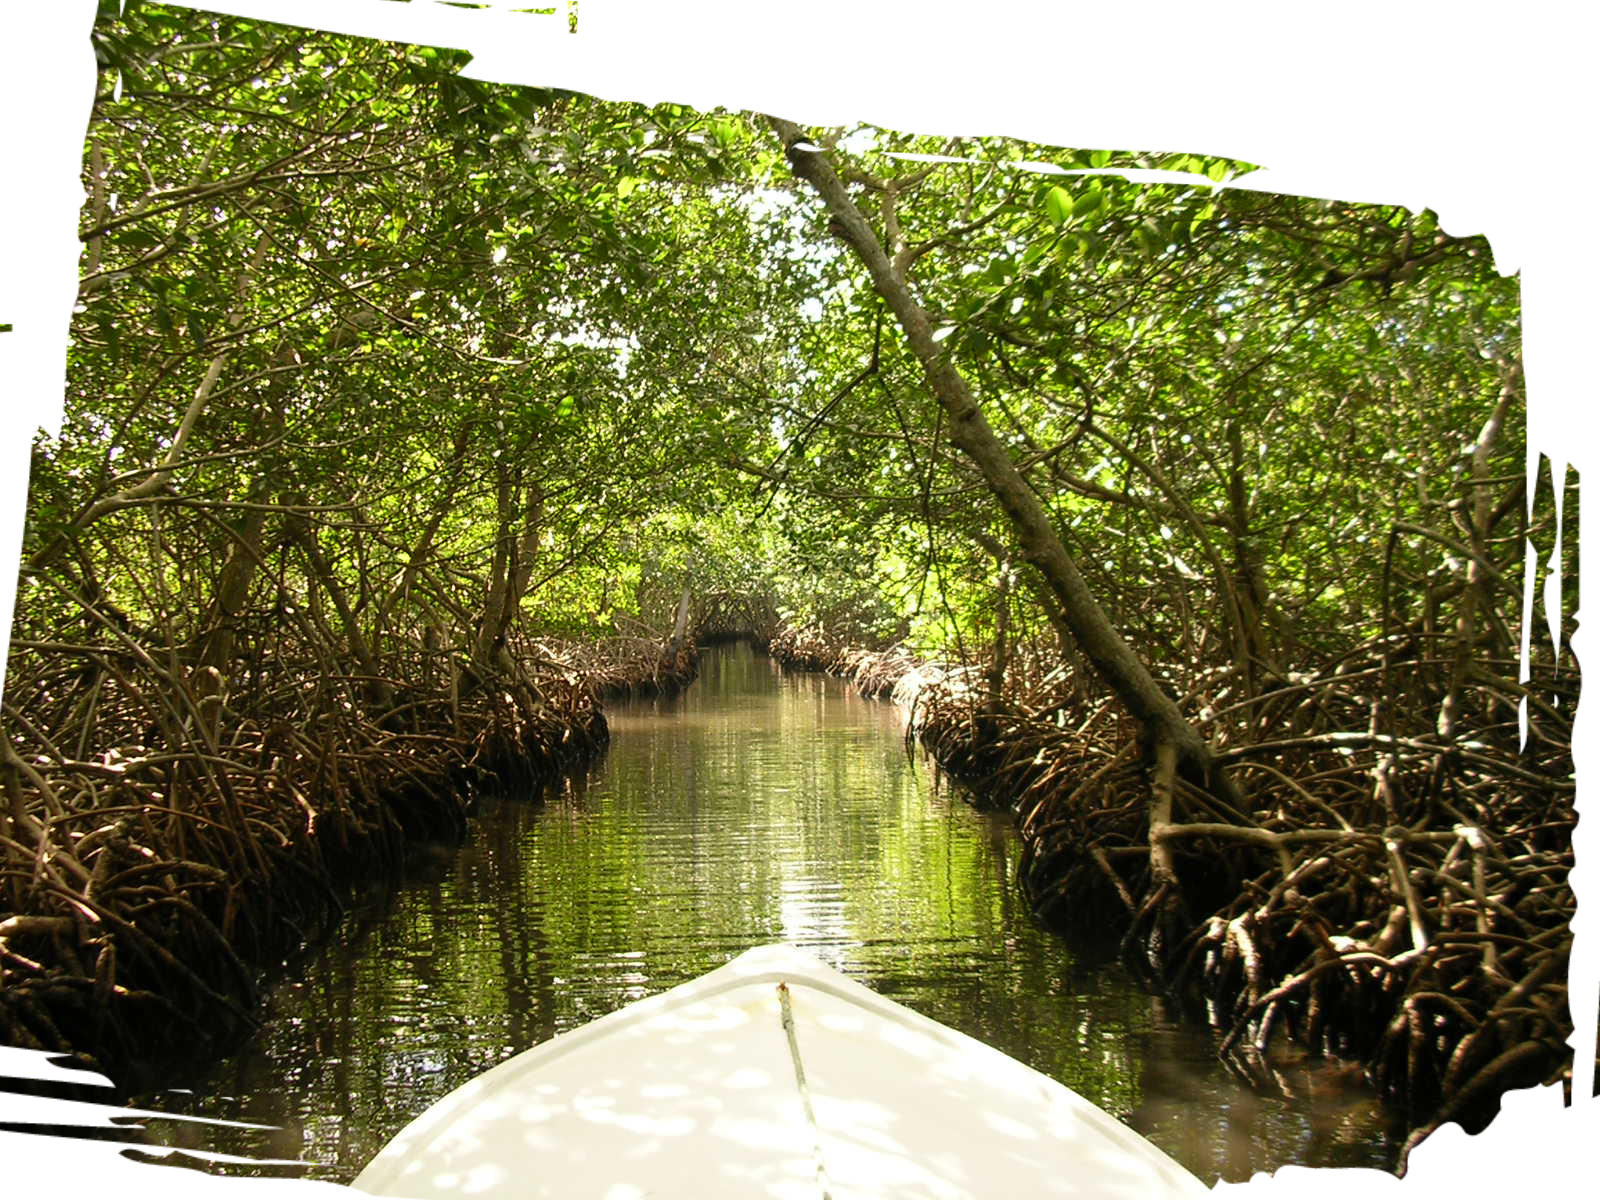 VISIT THE MANGROVES